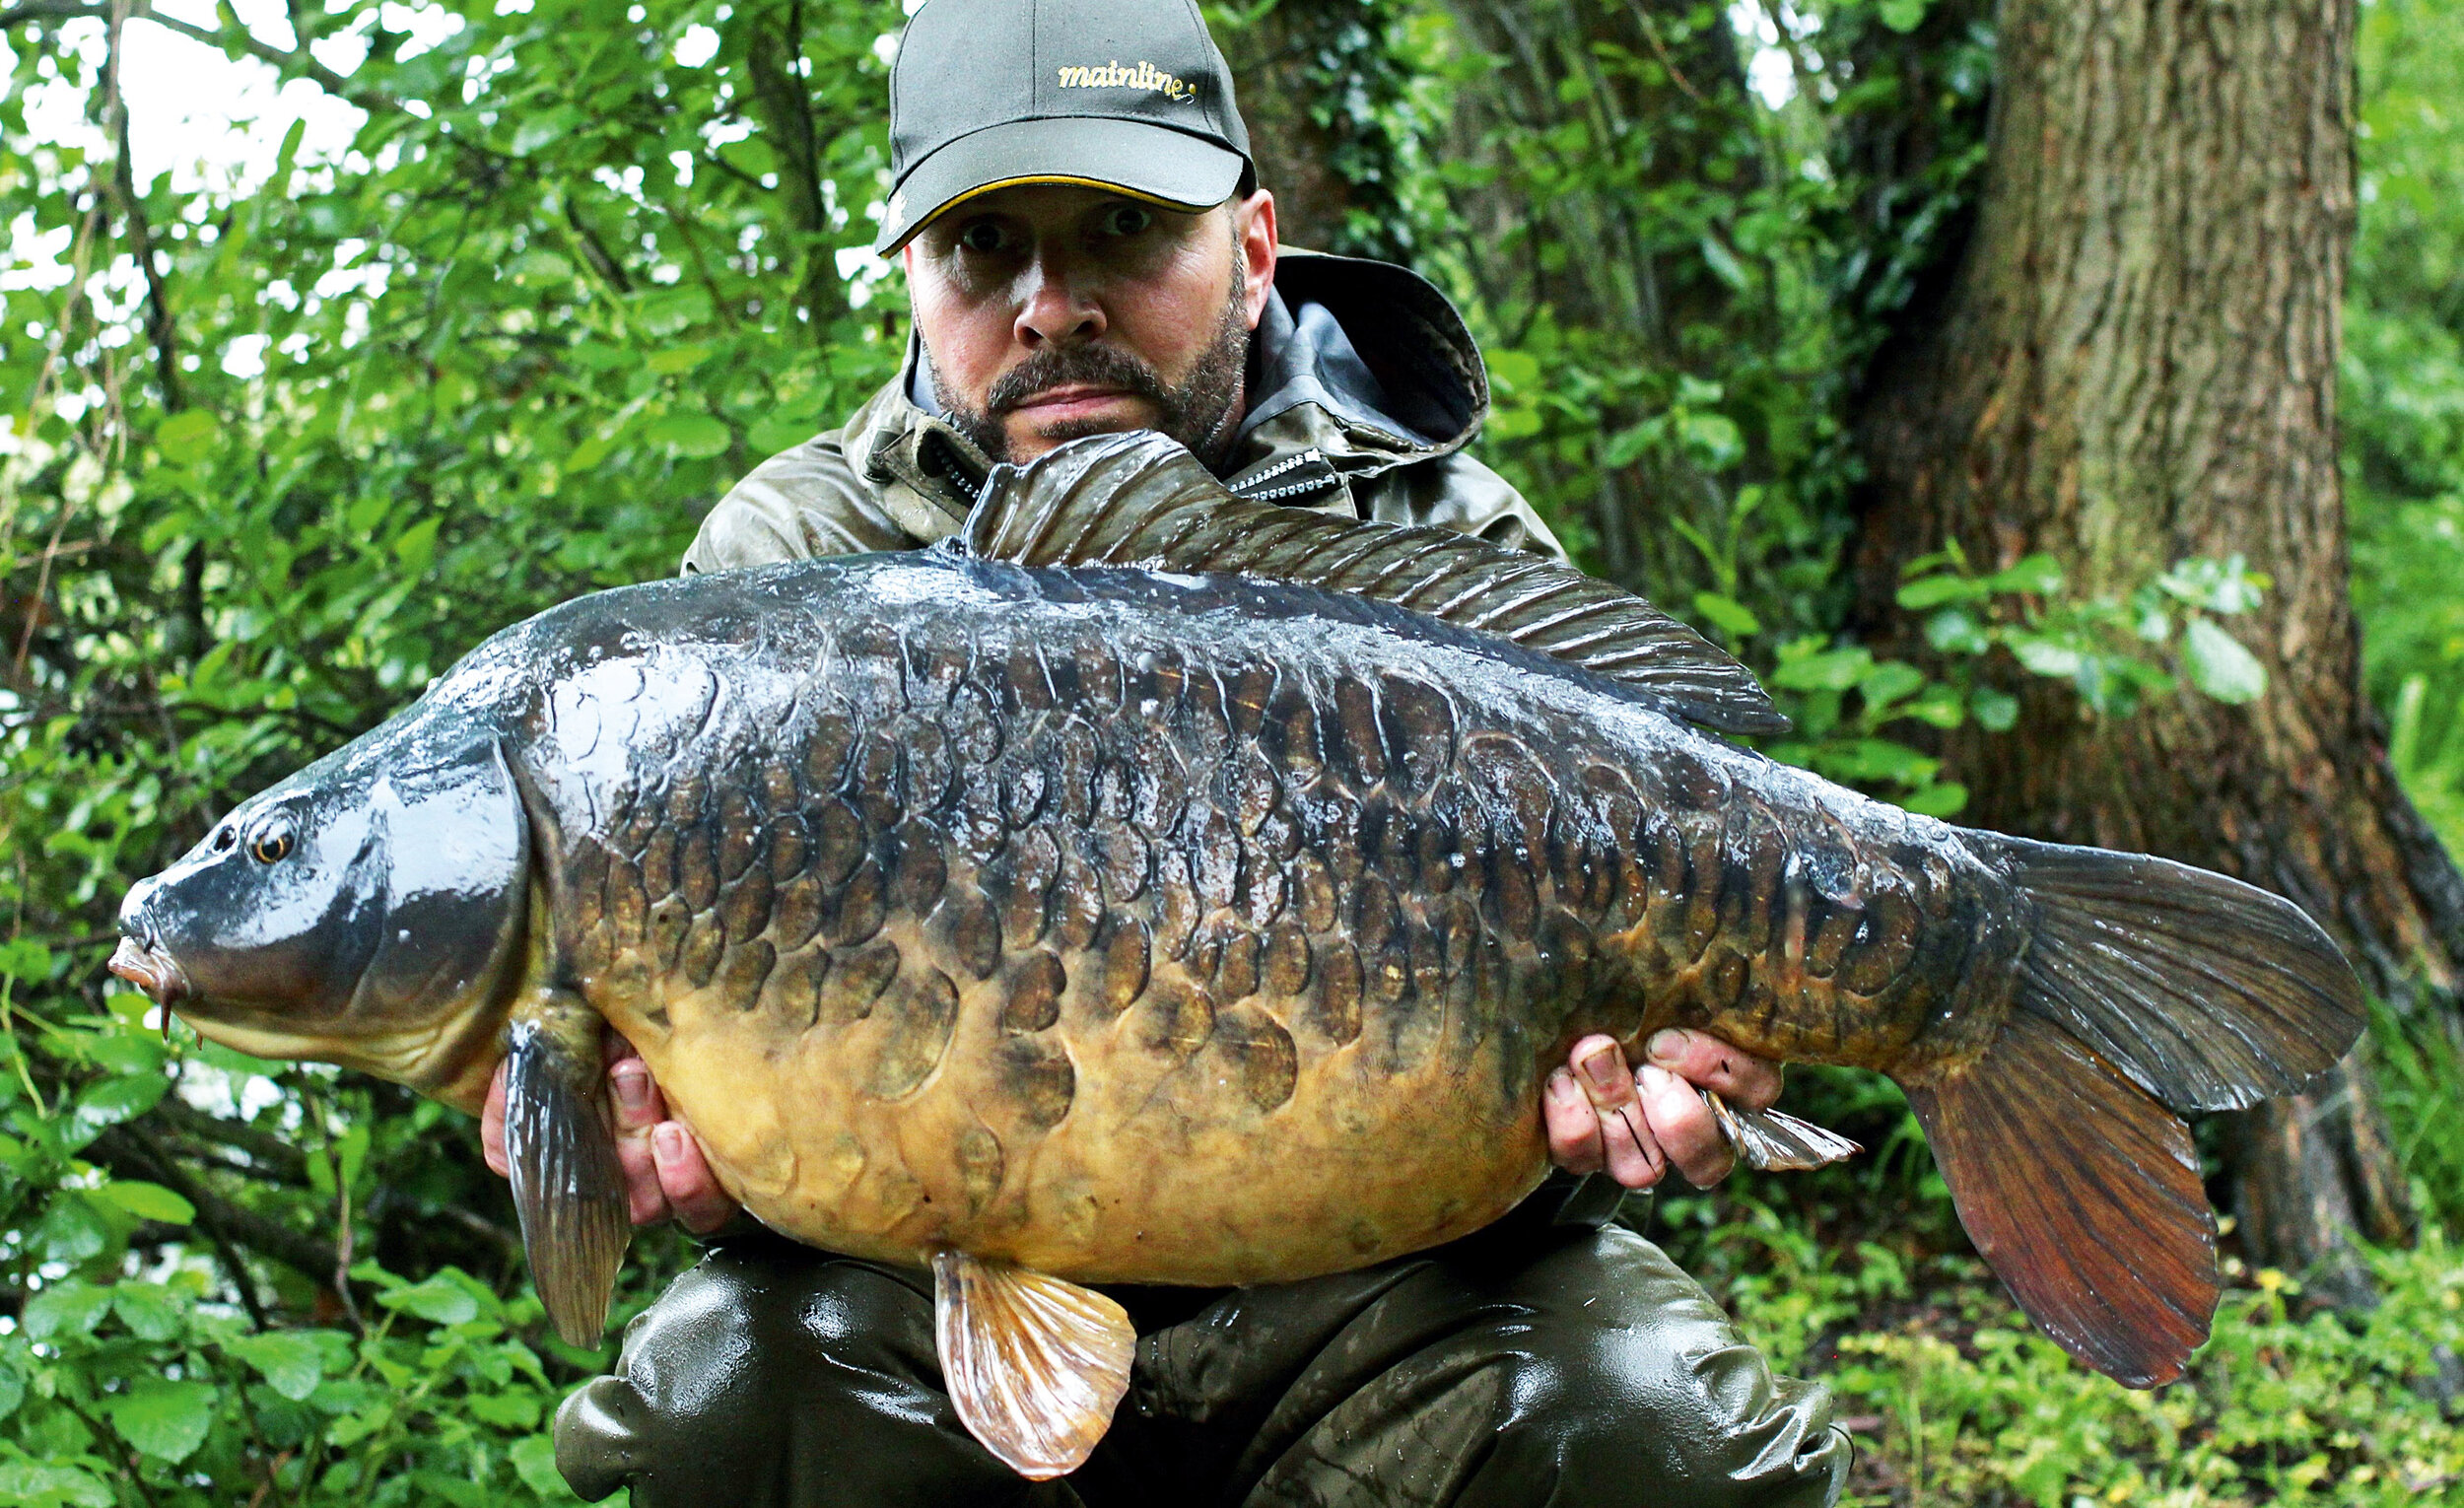 The soft-coated rig, this time with a bottom bait, tempted this fabulous looking carp!